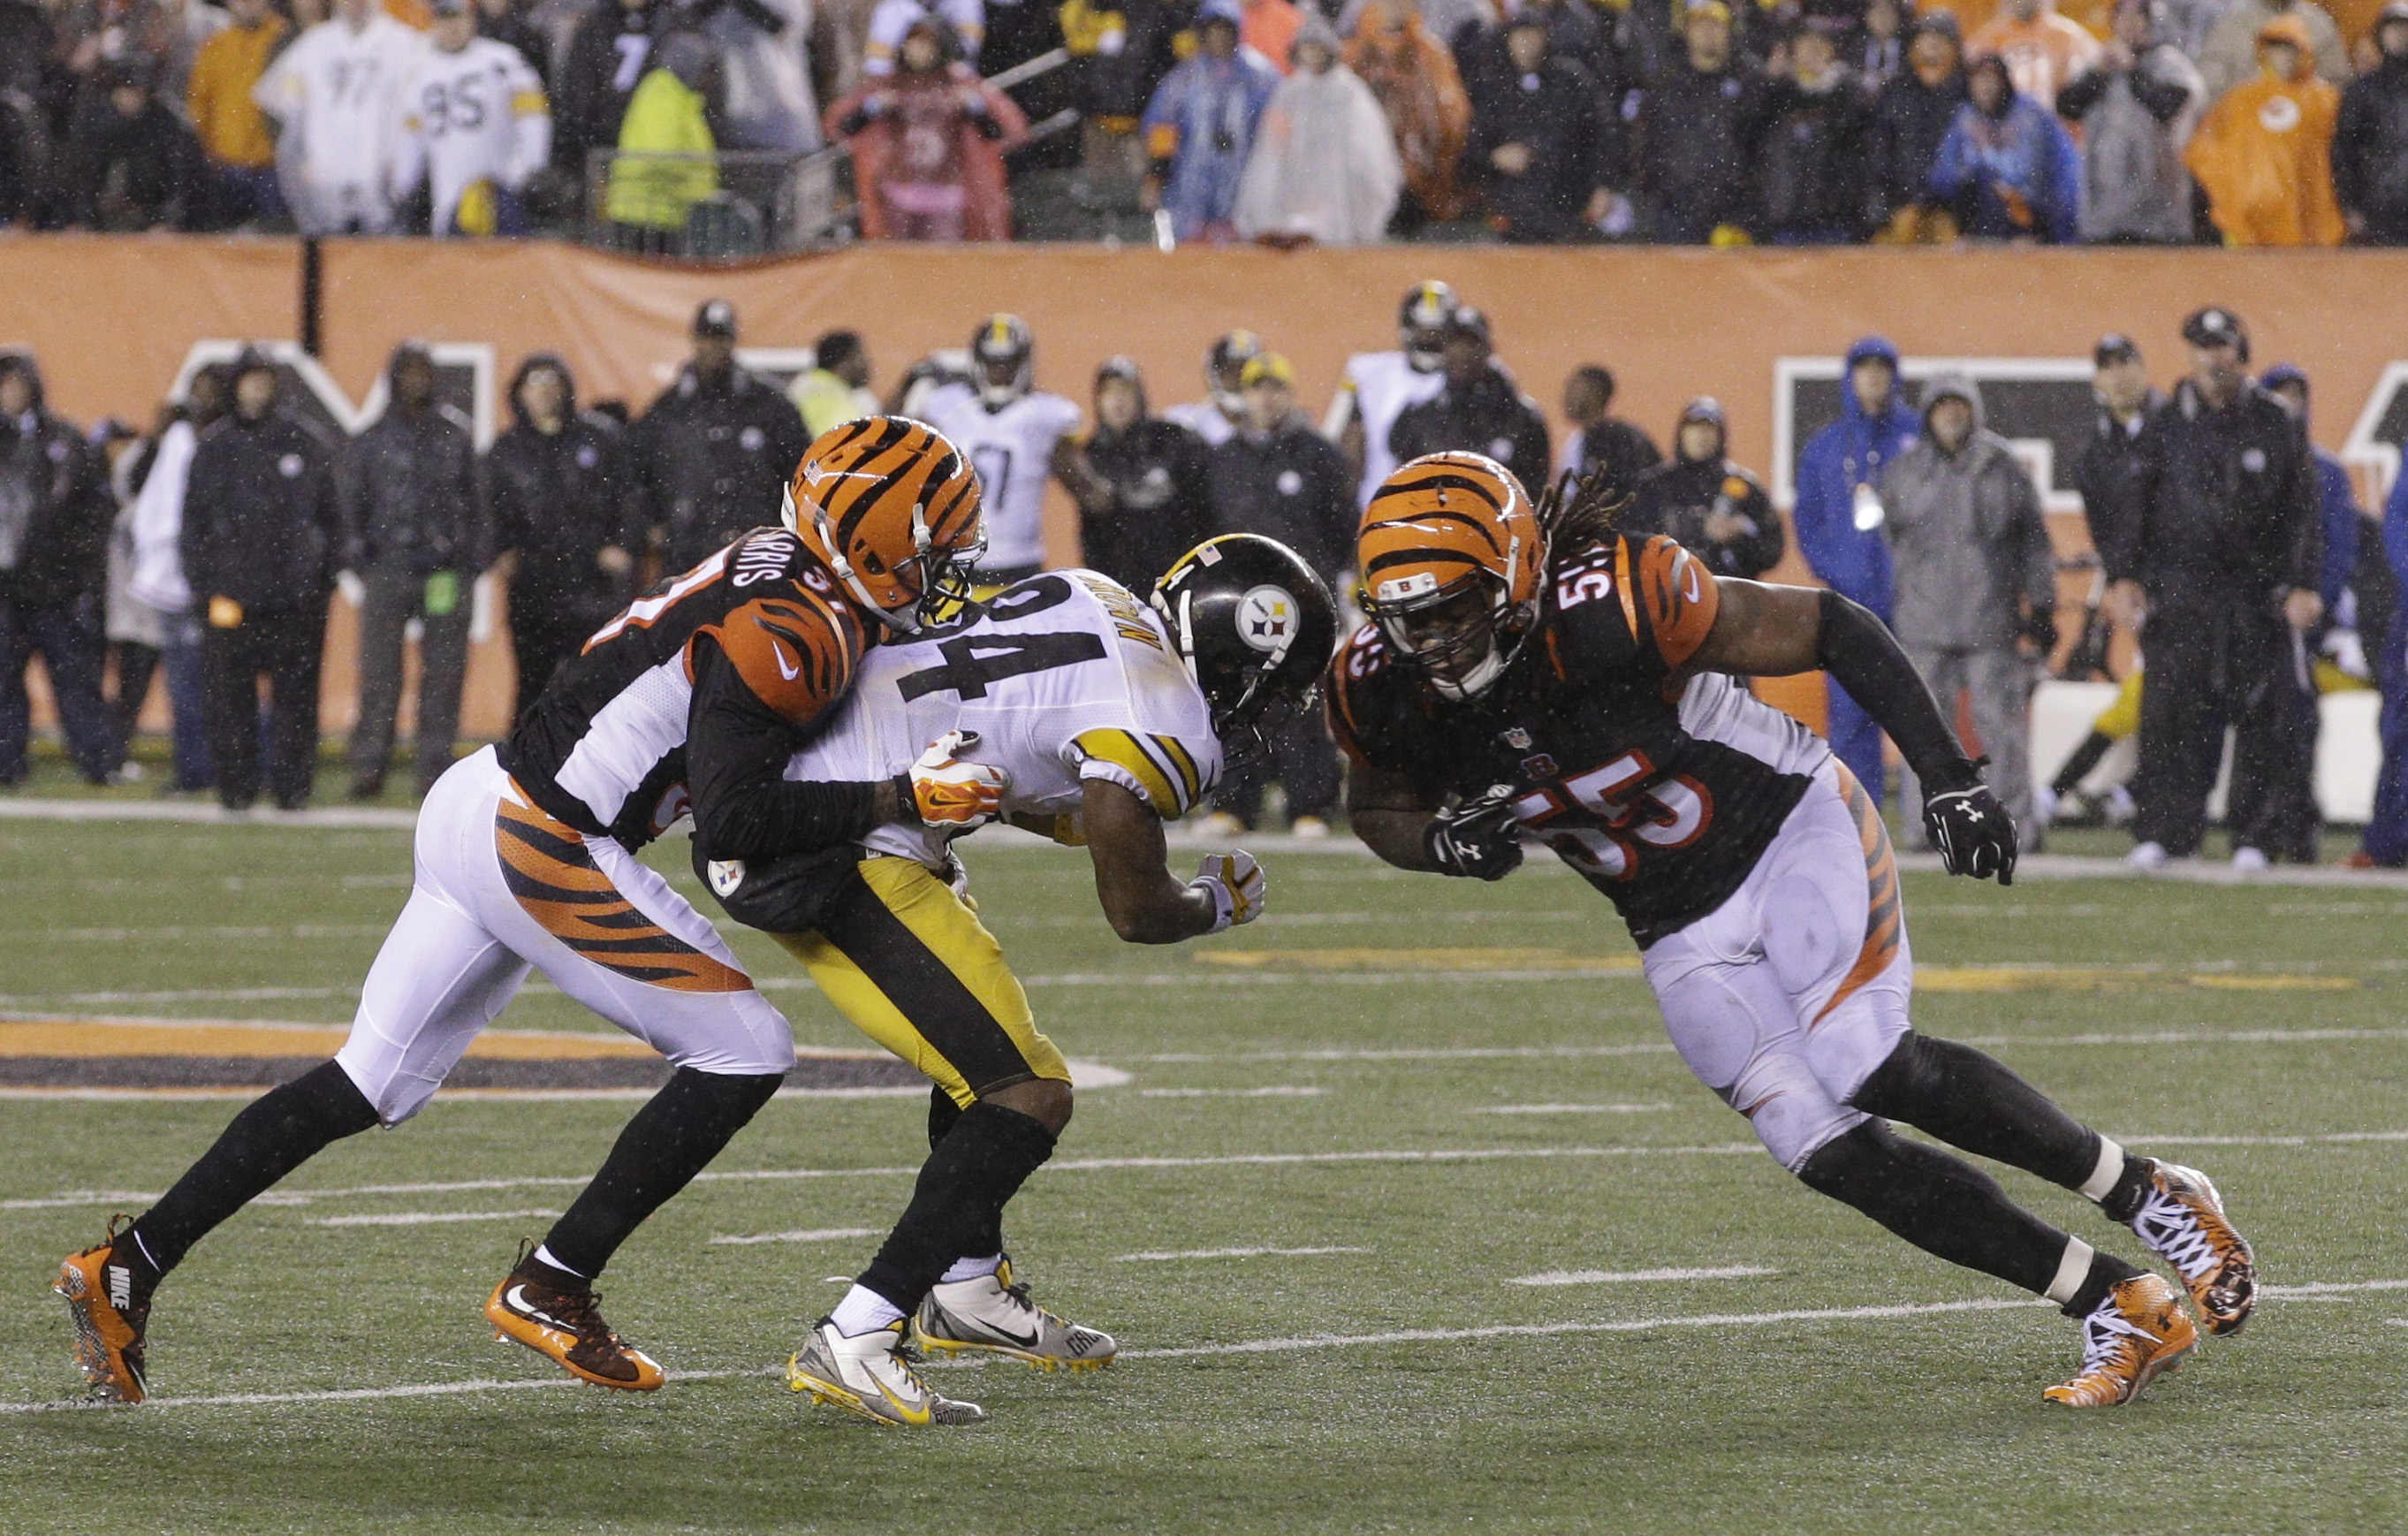 FILE - In this Jan. 10, 2016, file photo, Cincinnati Bengals' Vontaze Burfict, right, runs into Pittsburgh Steelers' Antonio Brown (84) during the second half of an NFL wild-card playoff football game in Cincinnati. The Bengals insist theyre past the melt